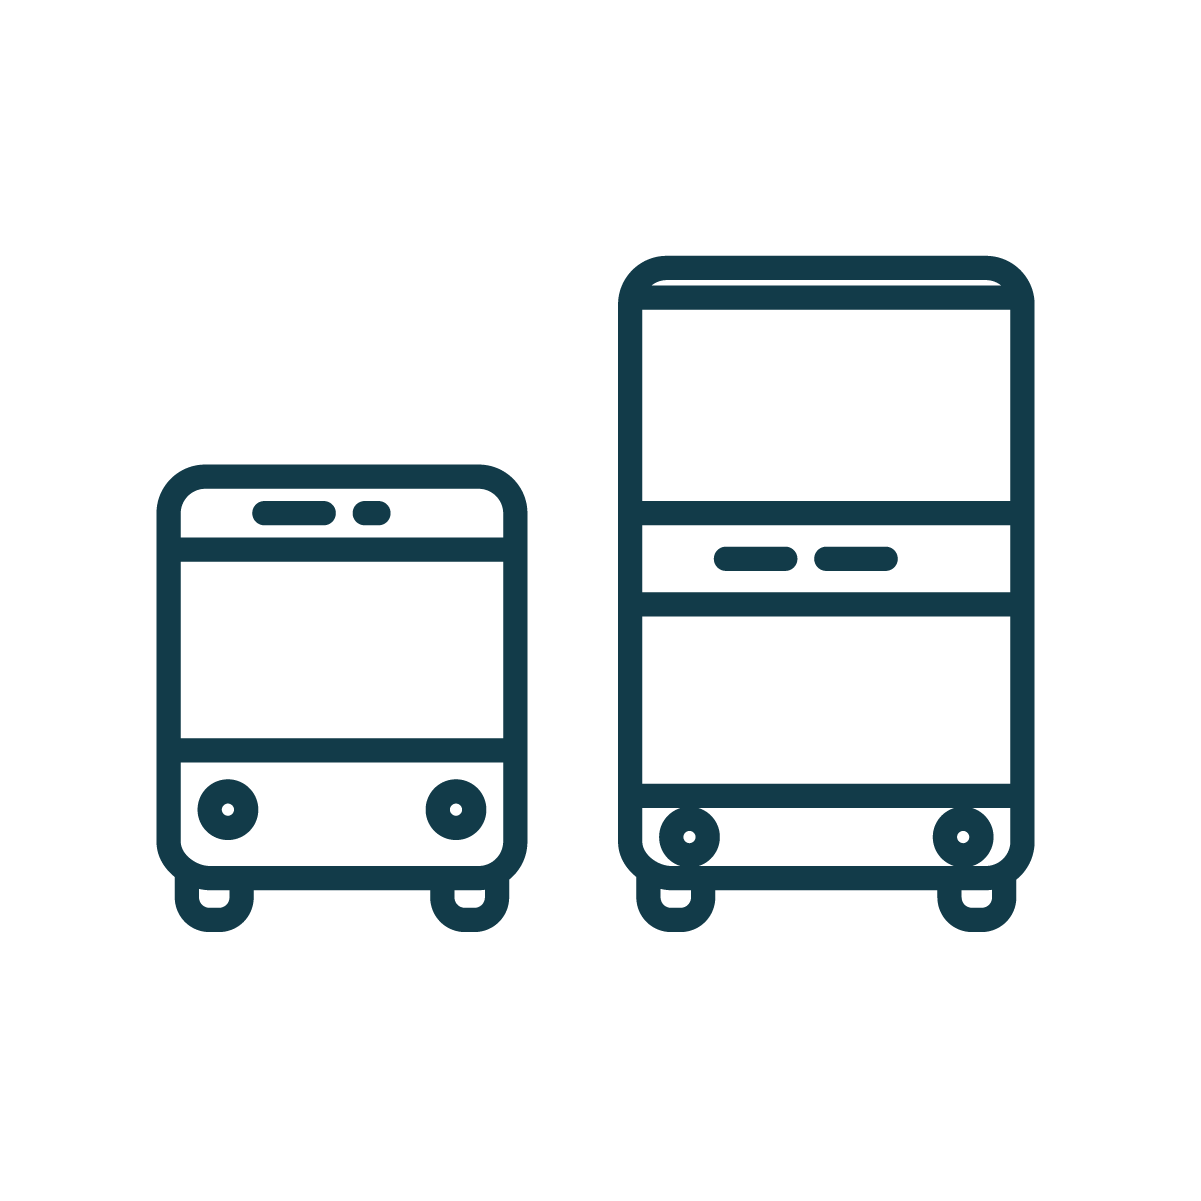 Bus and m_bus@3x.png